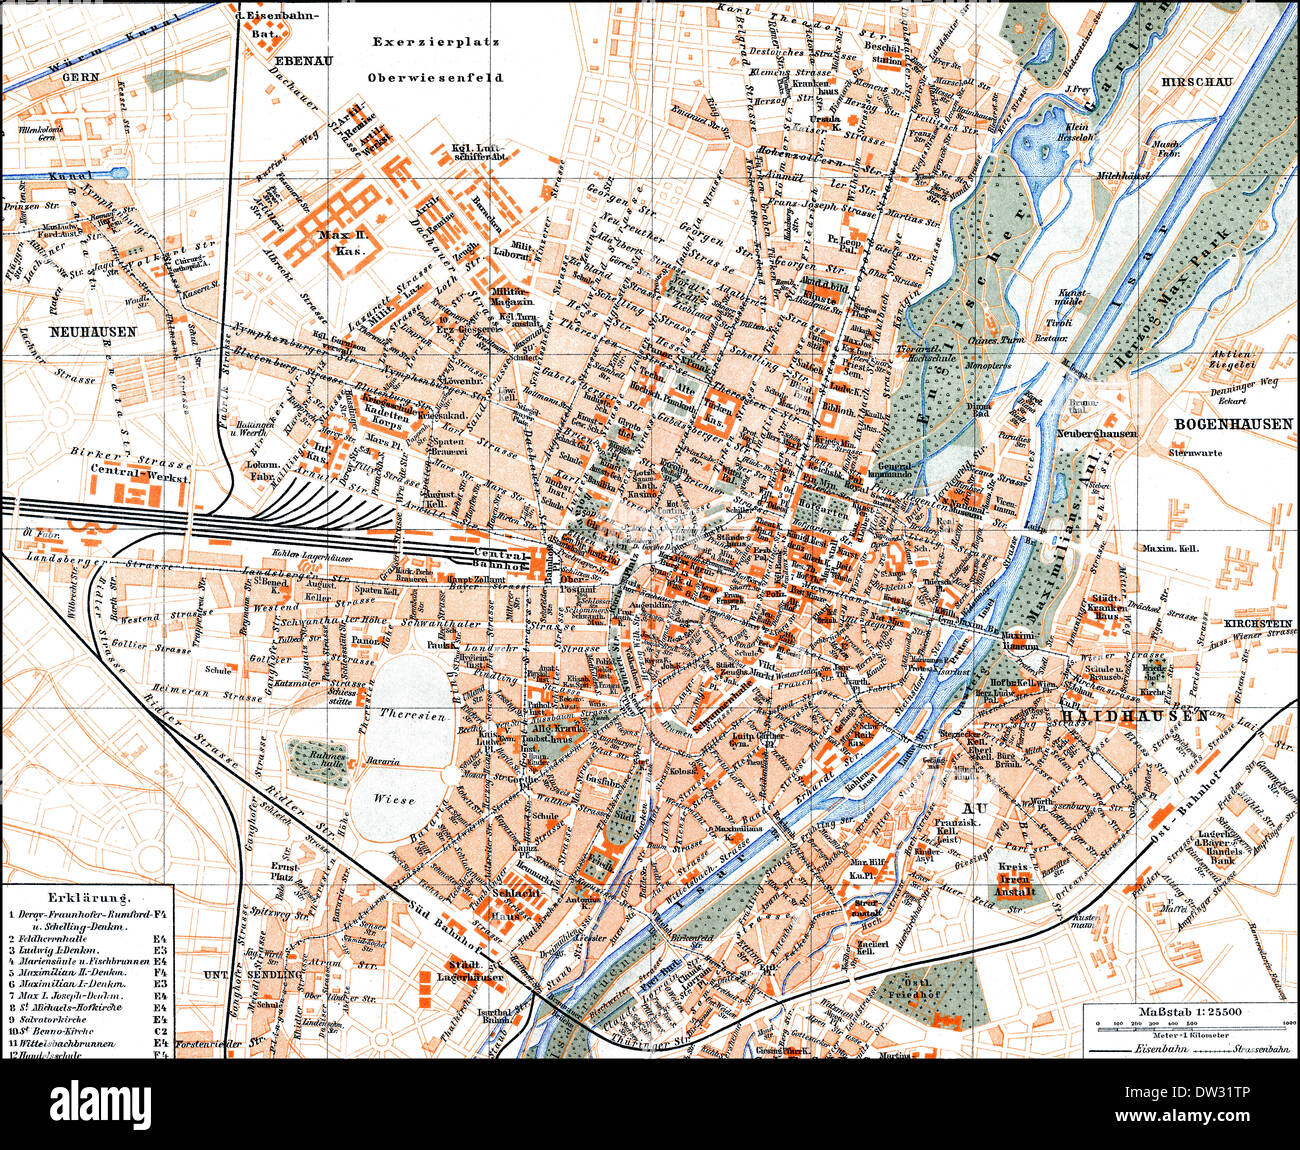 Historical Map Of Munich Germany 1896 Stock Photo 67064838 Alamy